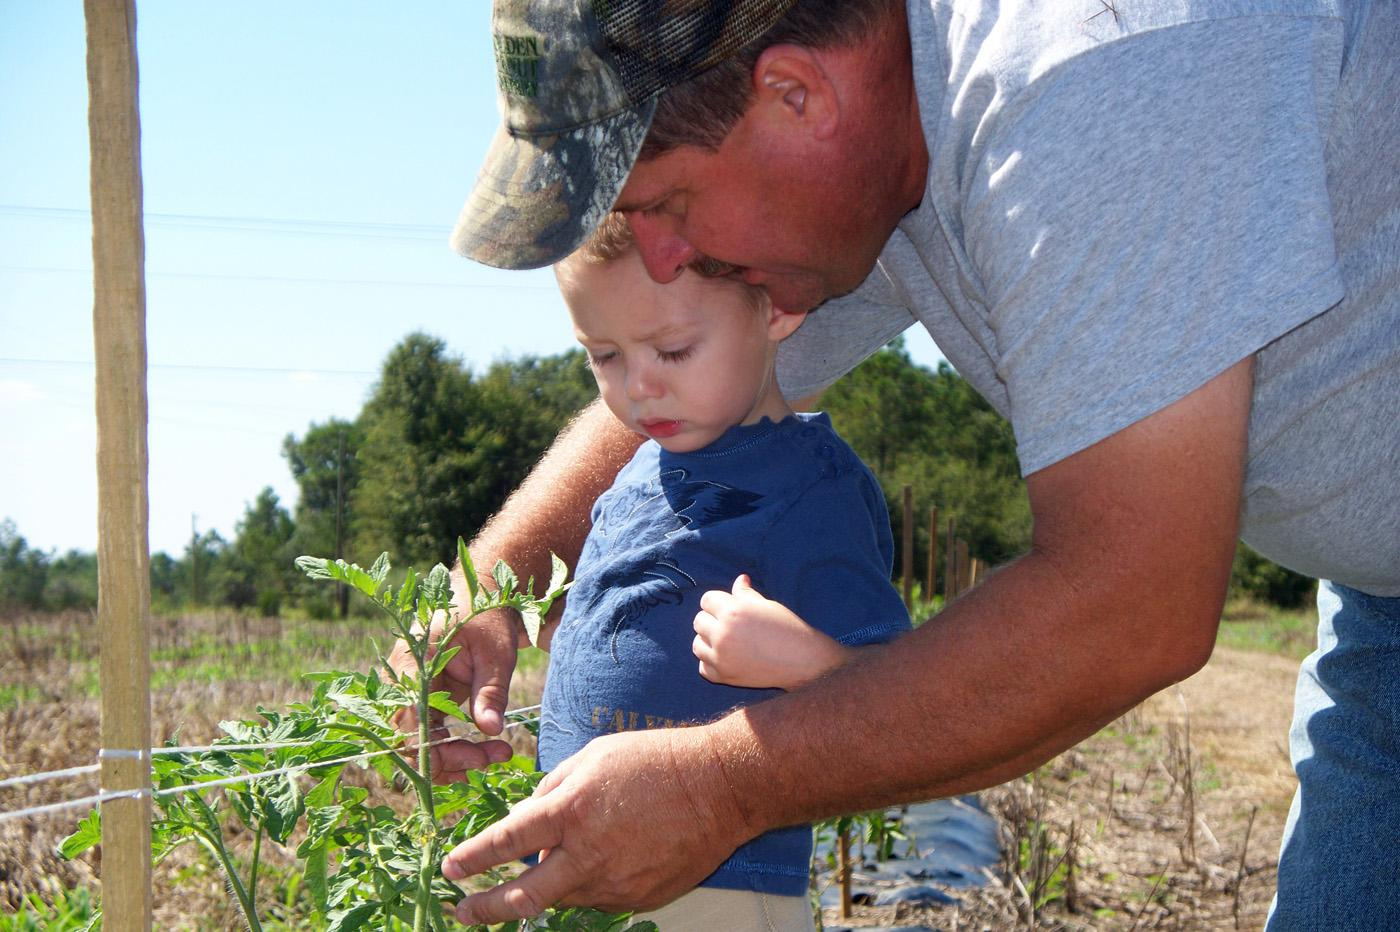 Mike Steede, pictured with his nephew Gunter, and his family operate a community supported agriculture program on land their family has farmed for over a century.